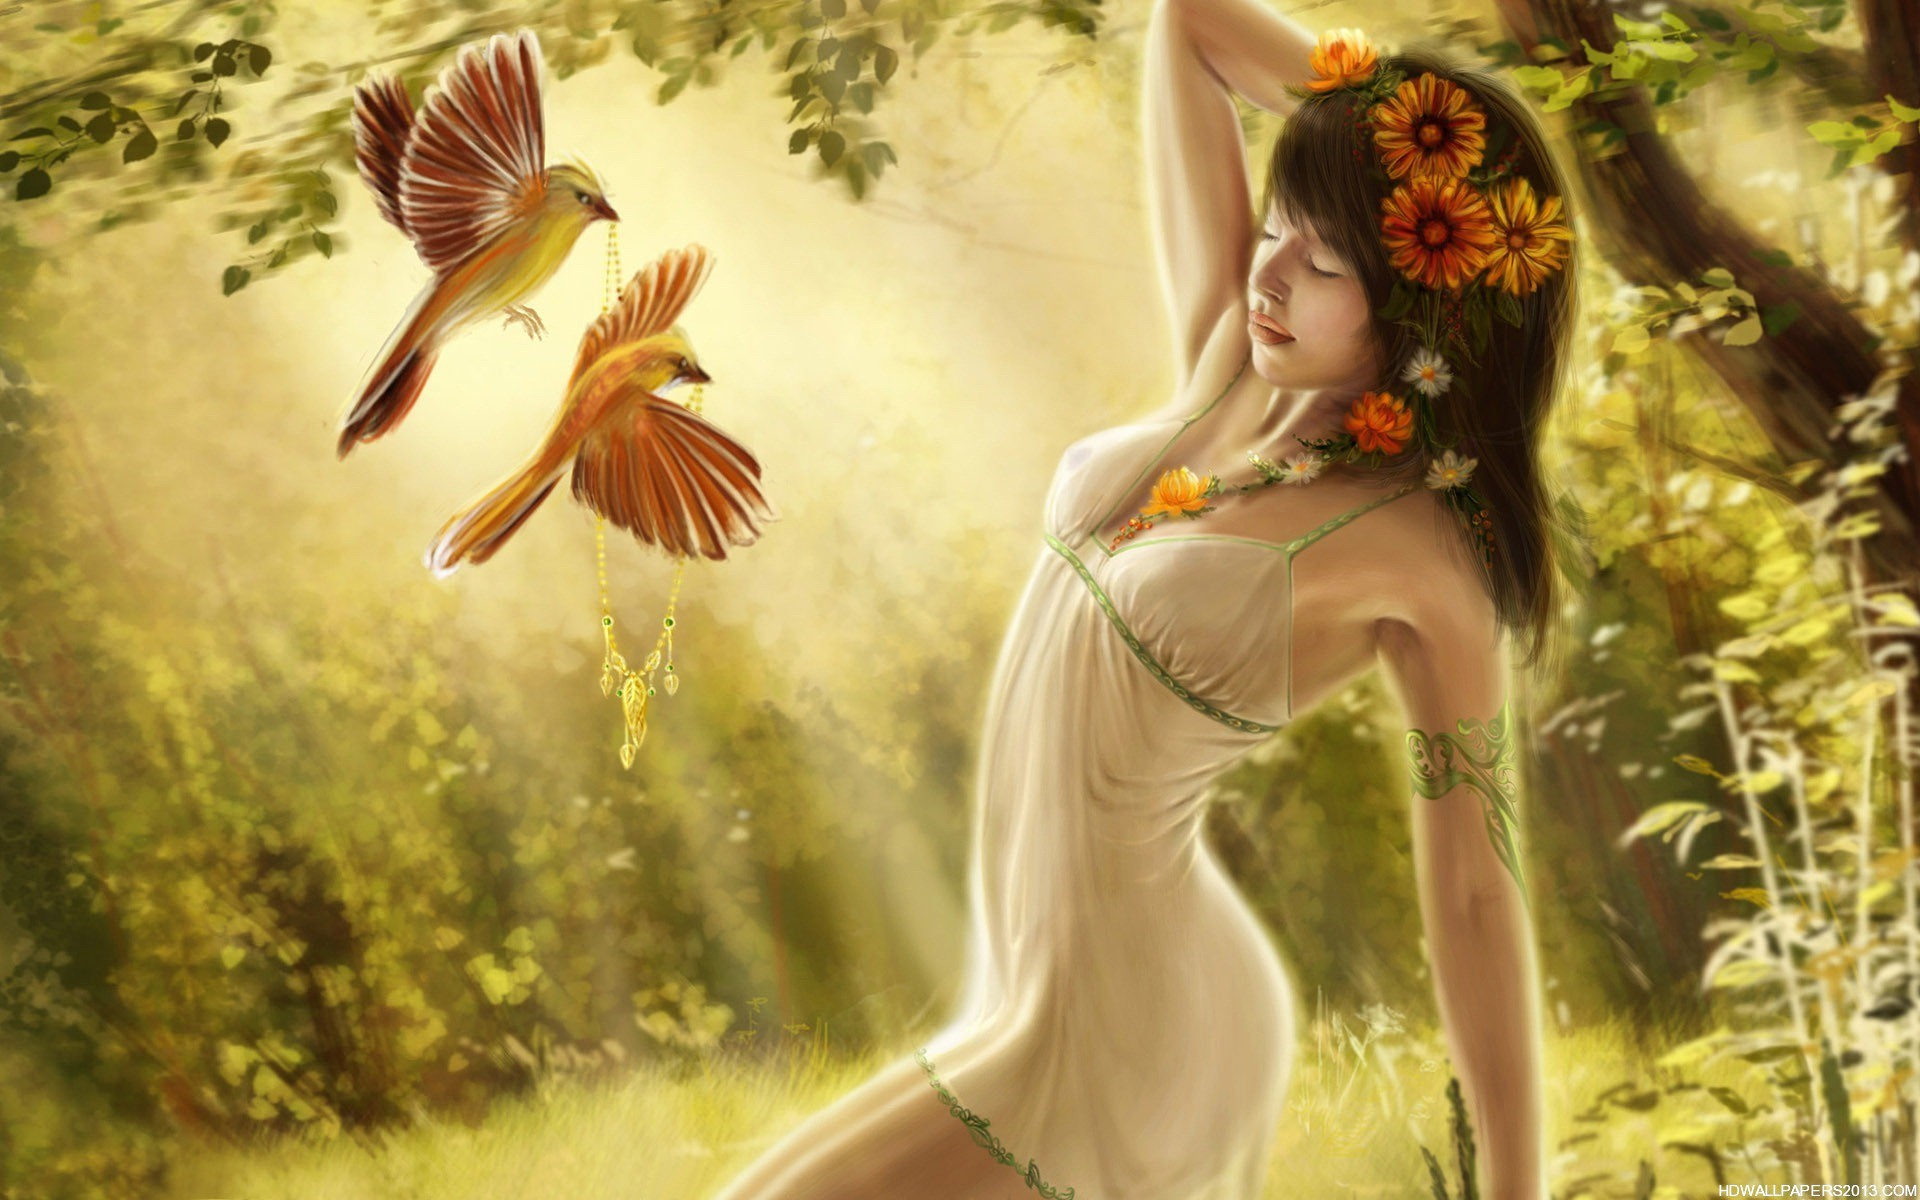 Sexy Fantasy Girl Wallpaper   High Definition Wallpapers ...